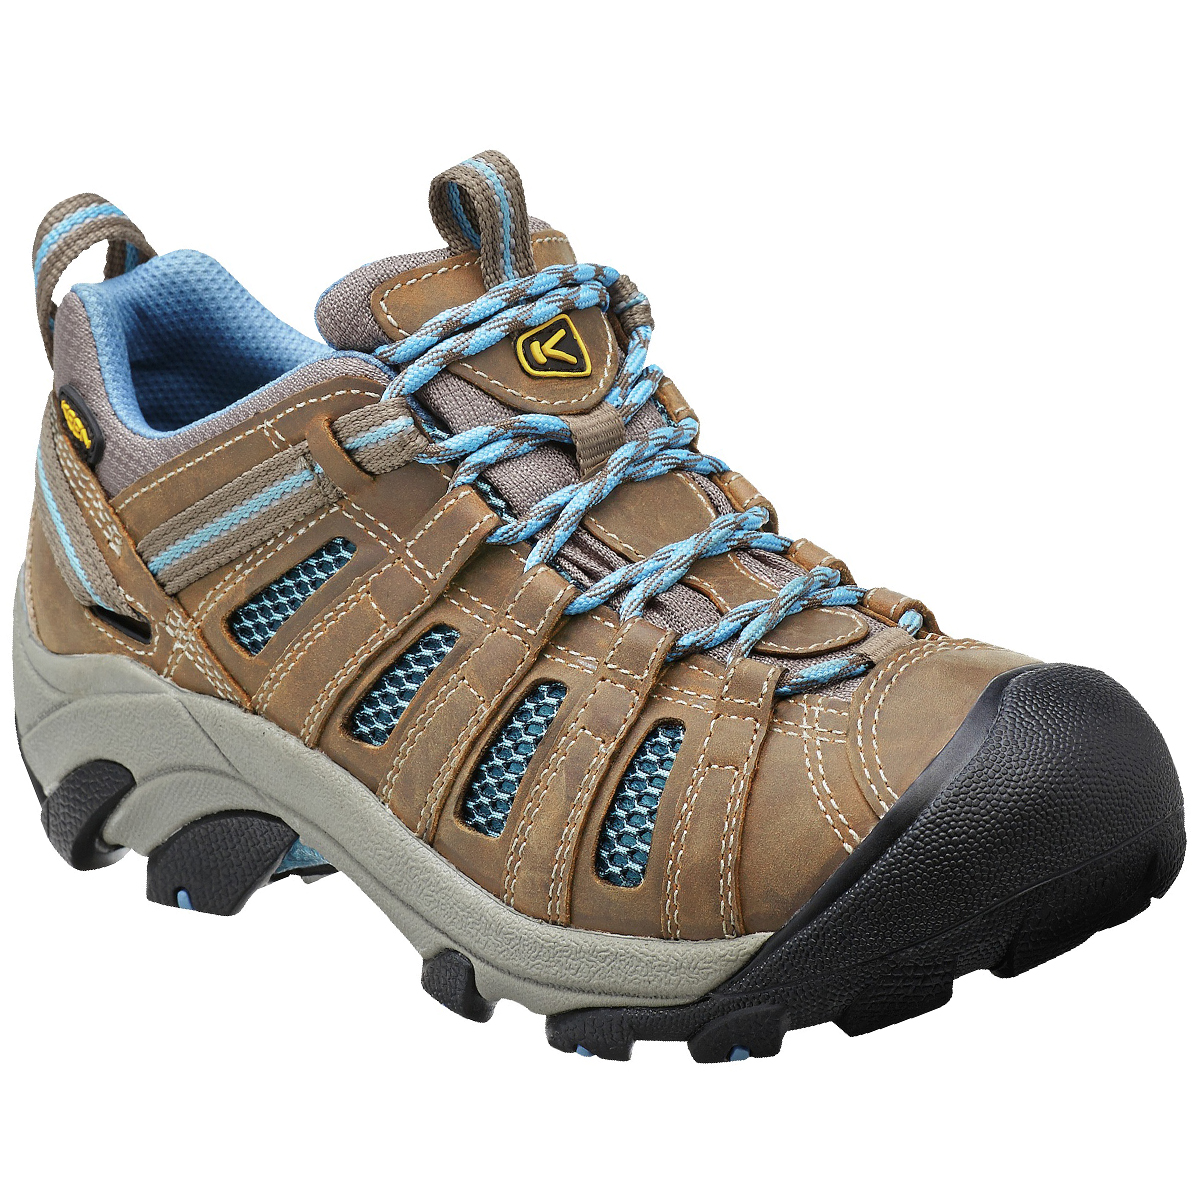 Keen Women's Voyageur Hiking Shoes - Brown, 6